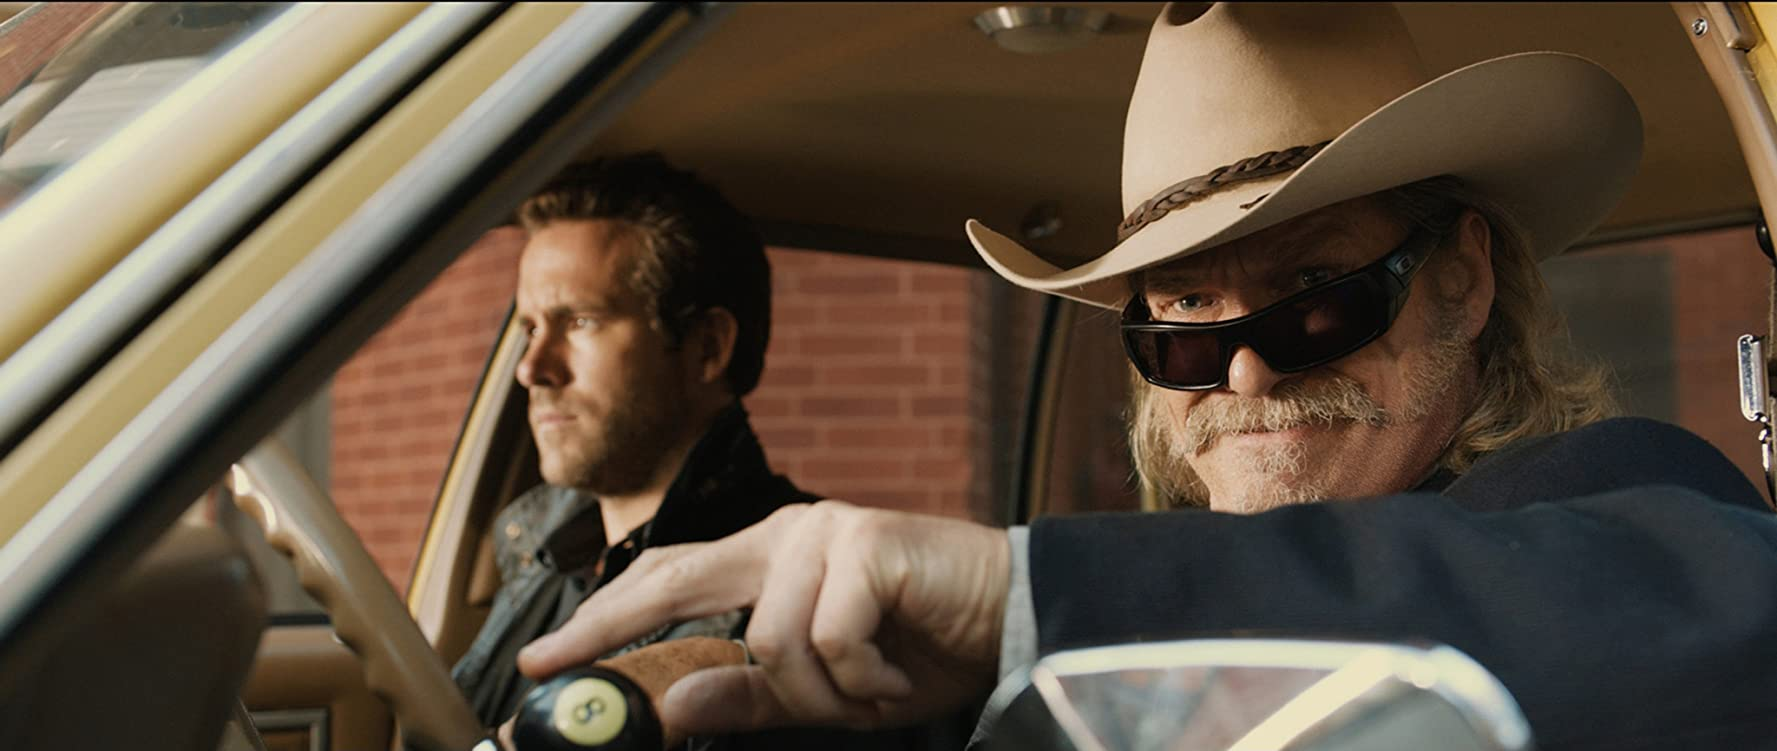 Jeff Bridges and Ryan Reynolds in R.I.P.D. (2013)